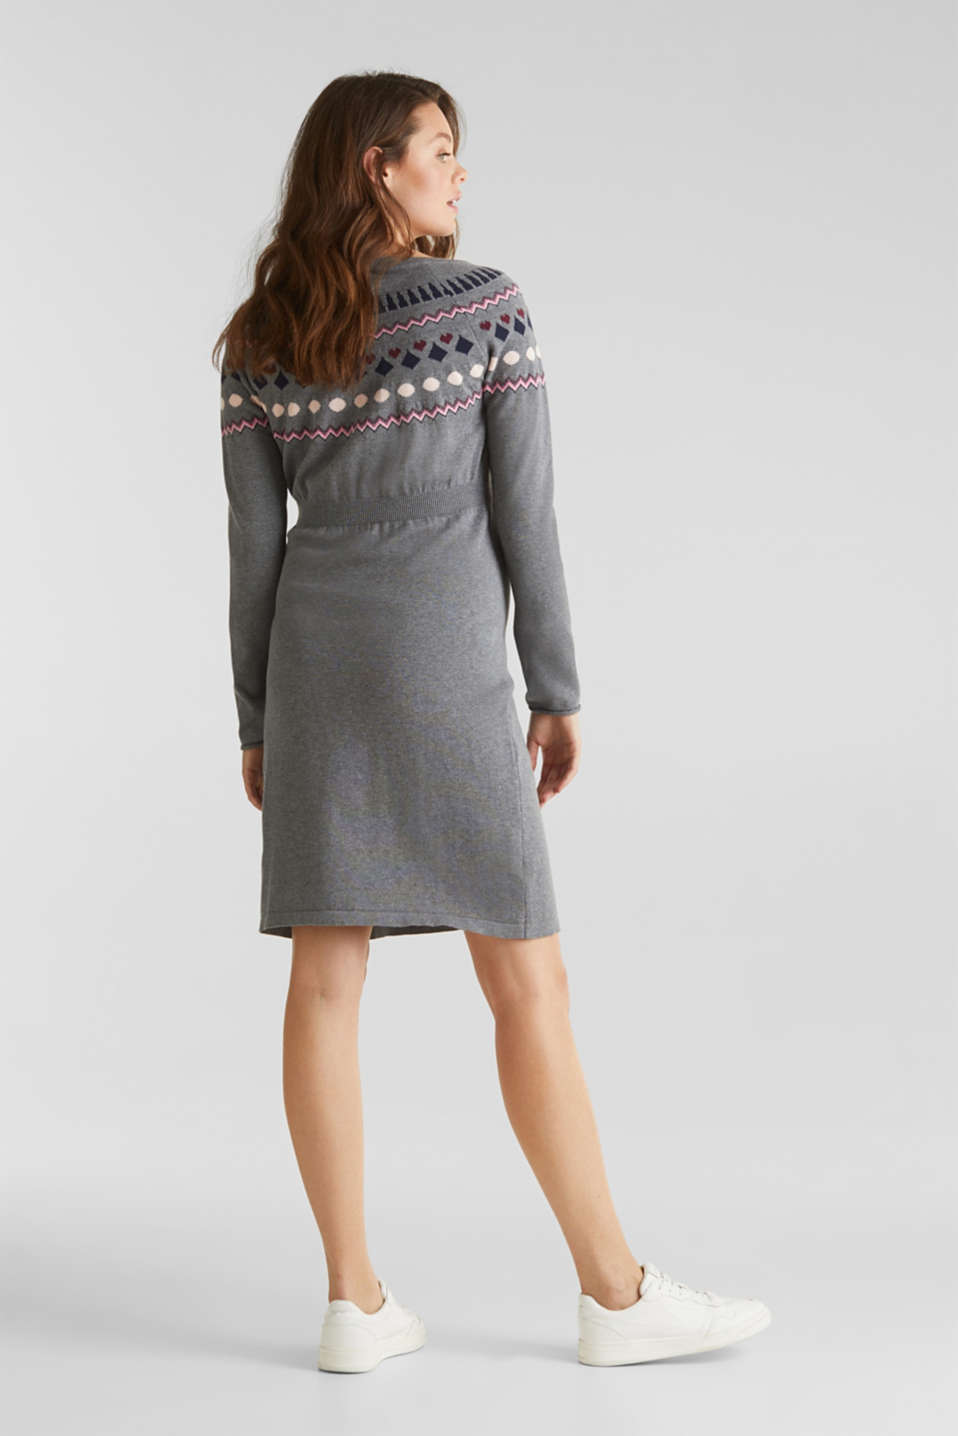 Knit dress with a jacquard pattern, LCMEDIUM GREY ME, detail image number 2